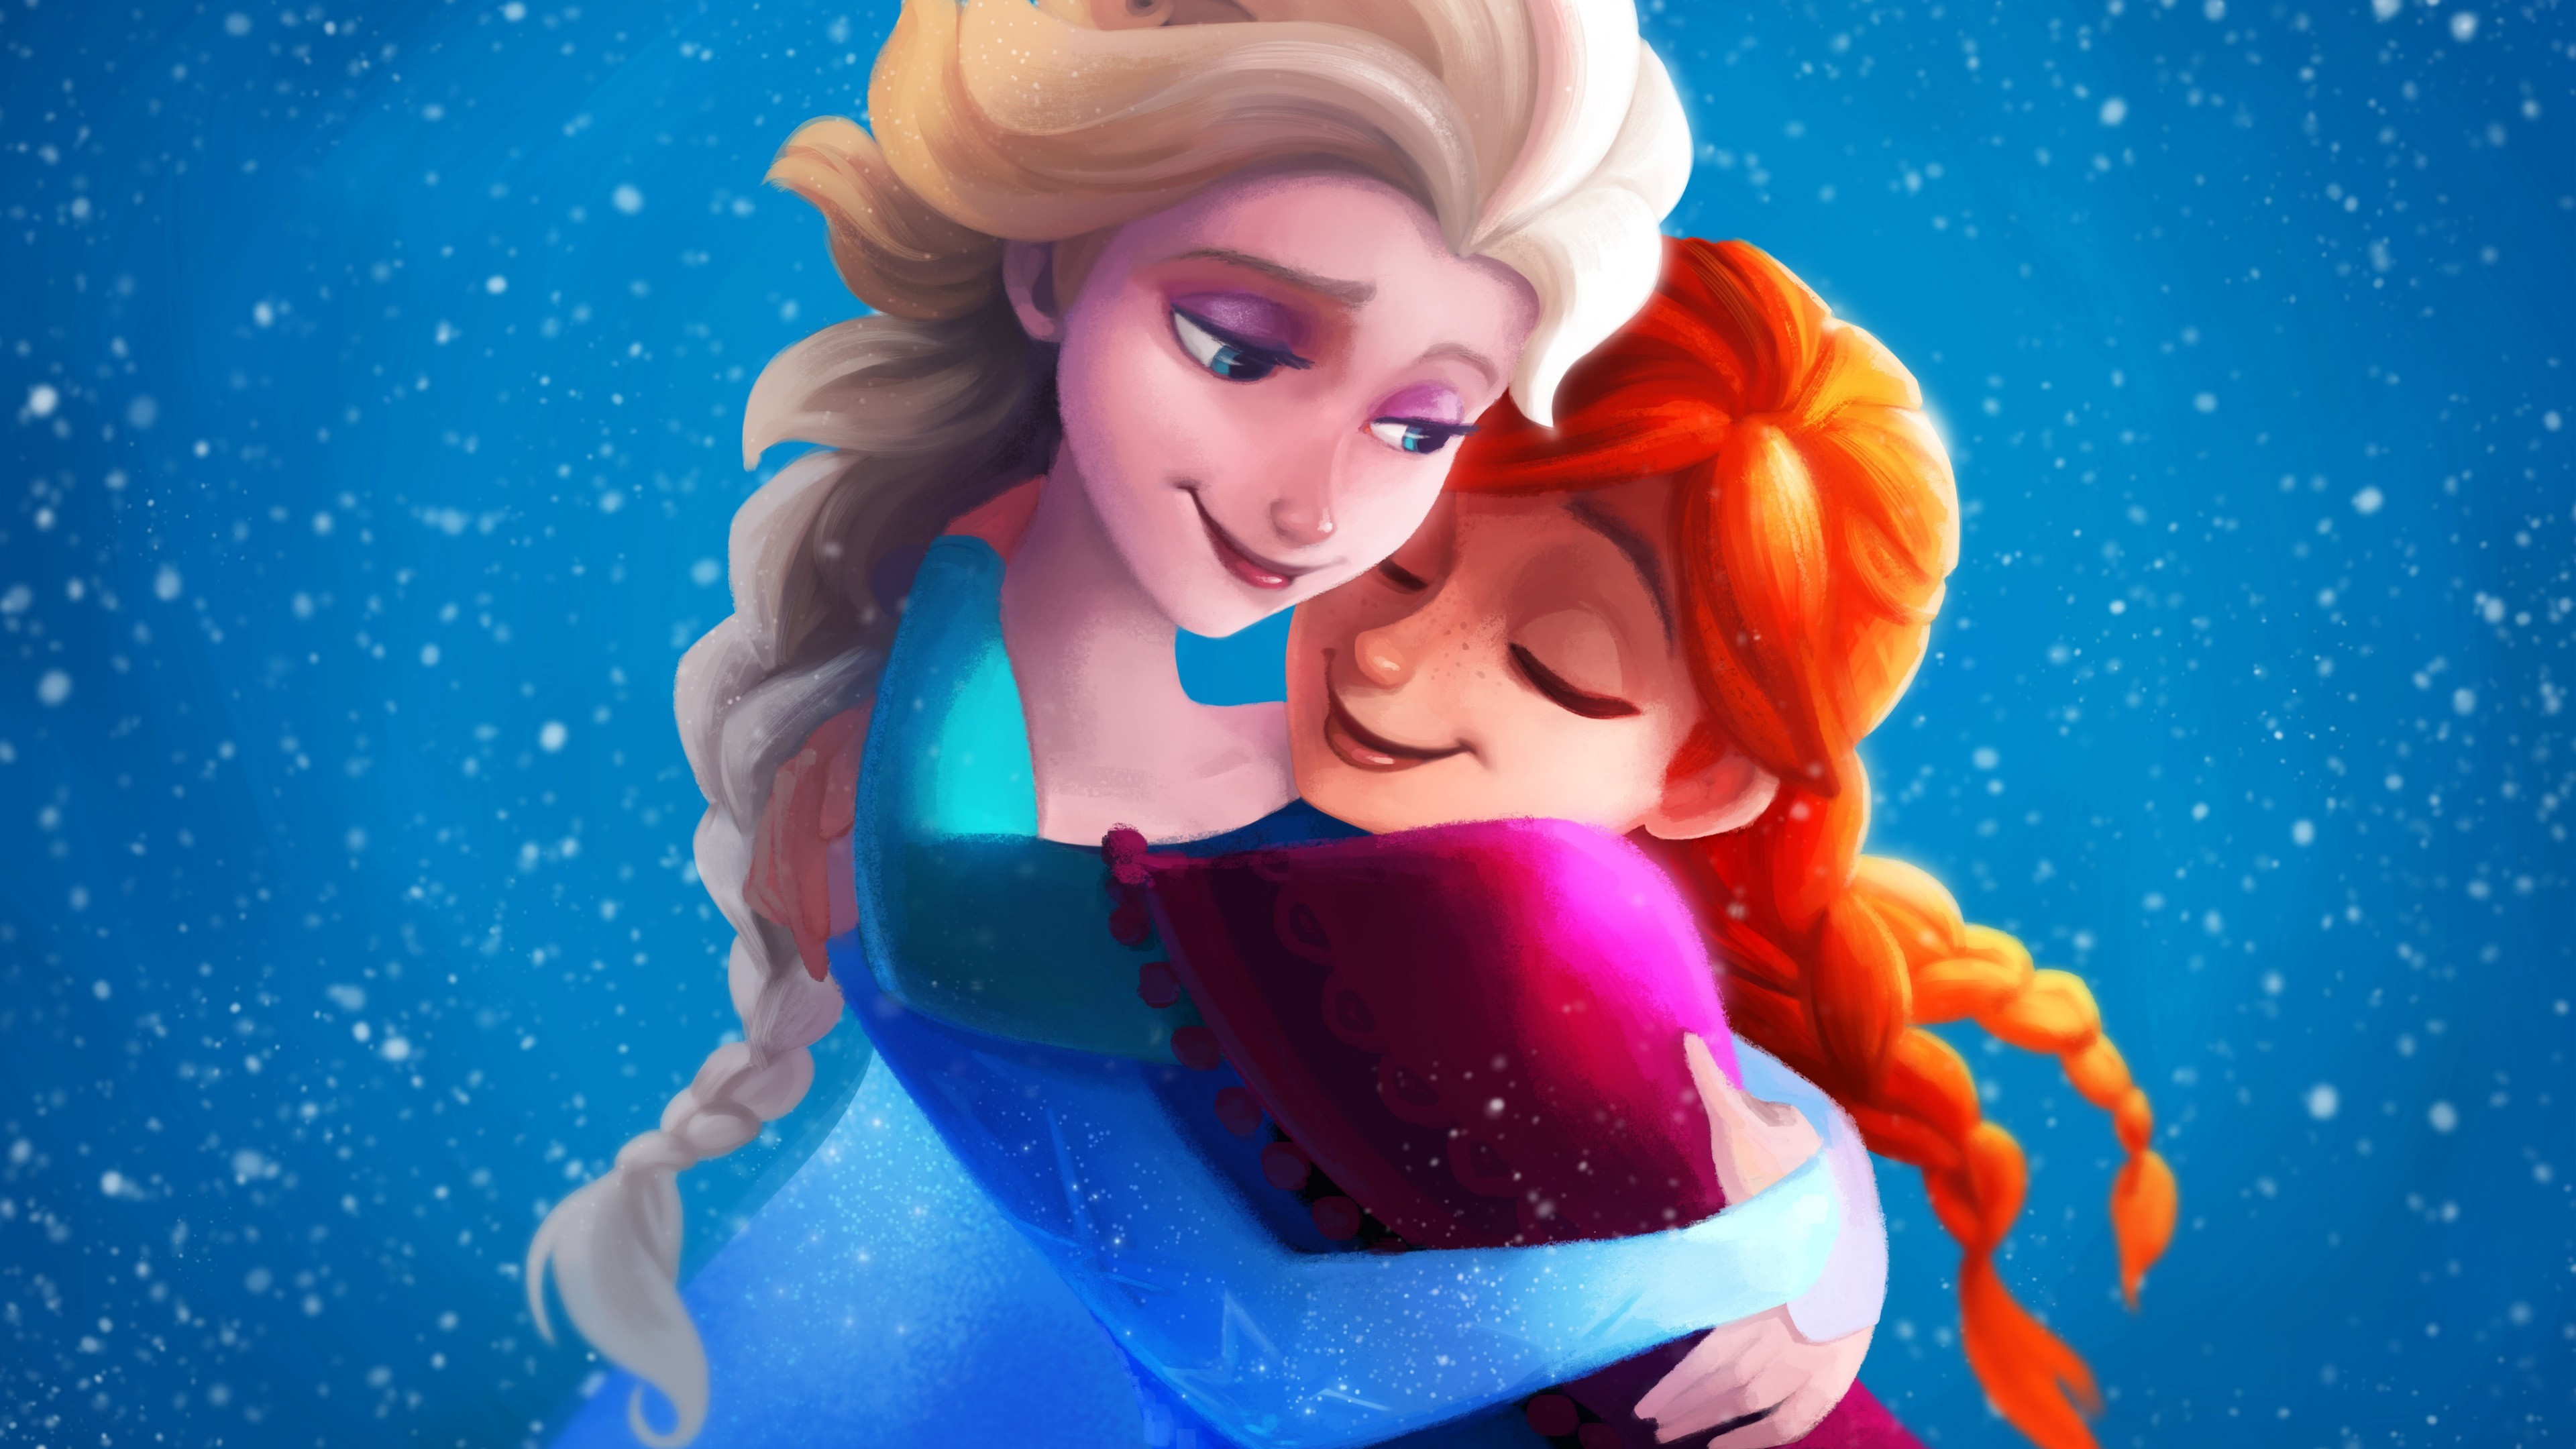 frozen fever elsa wallpaper (74+ images)